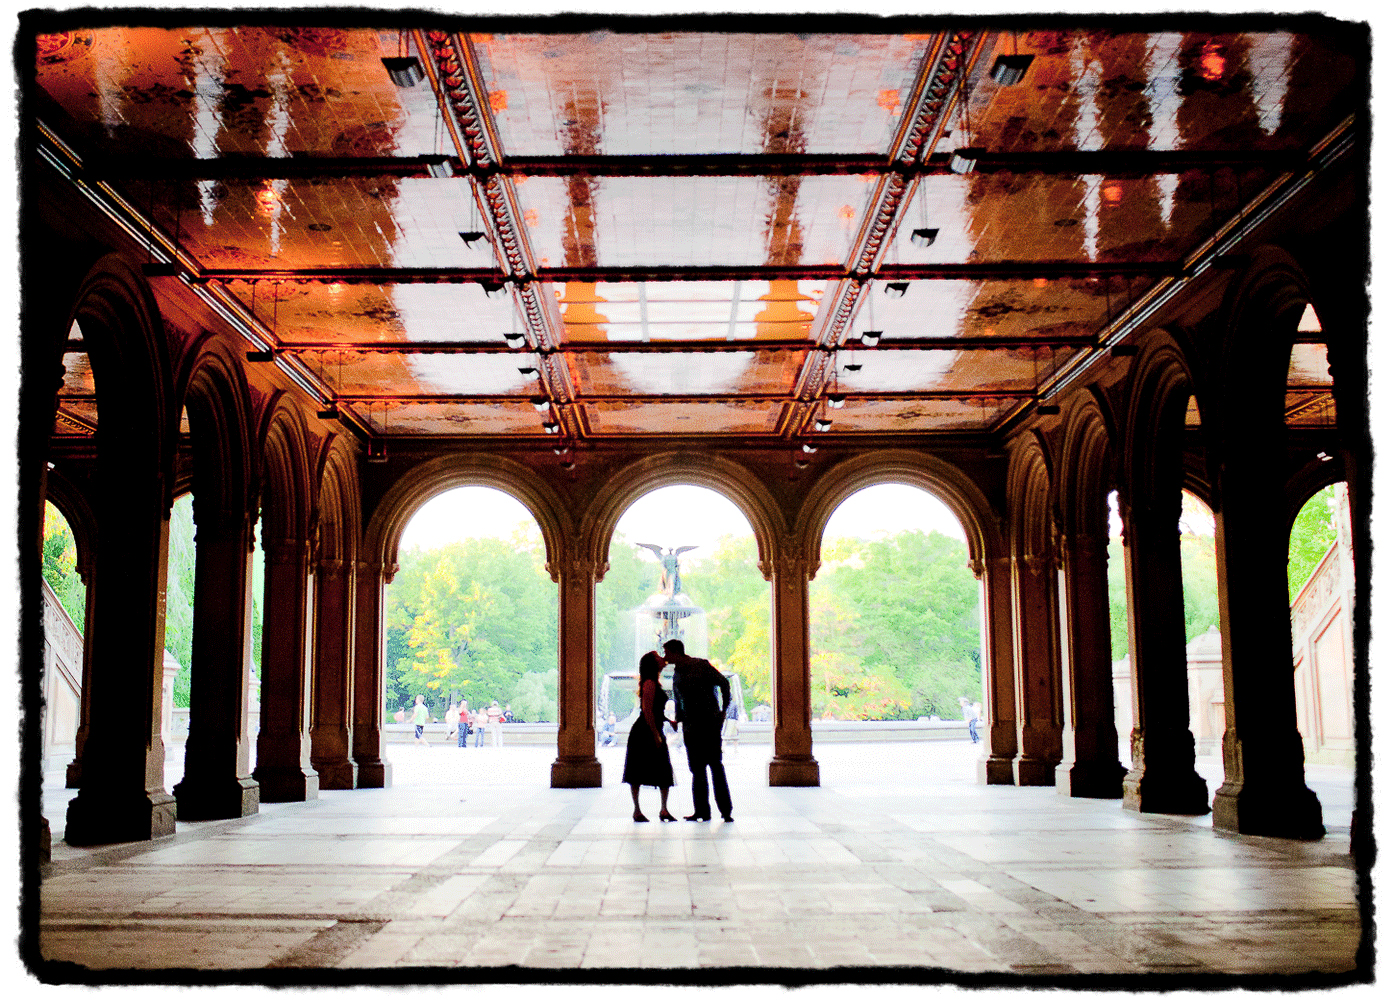 Engagement Portrait: Amy & Jon share a kiss by Bethesda Fountain in New York's Central Park.